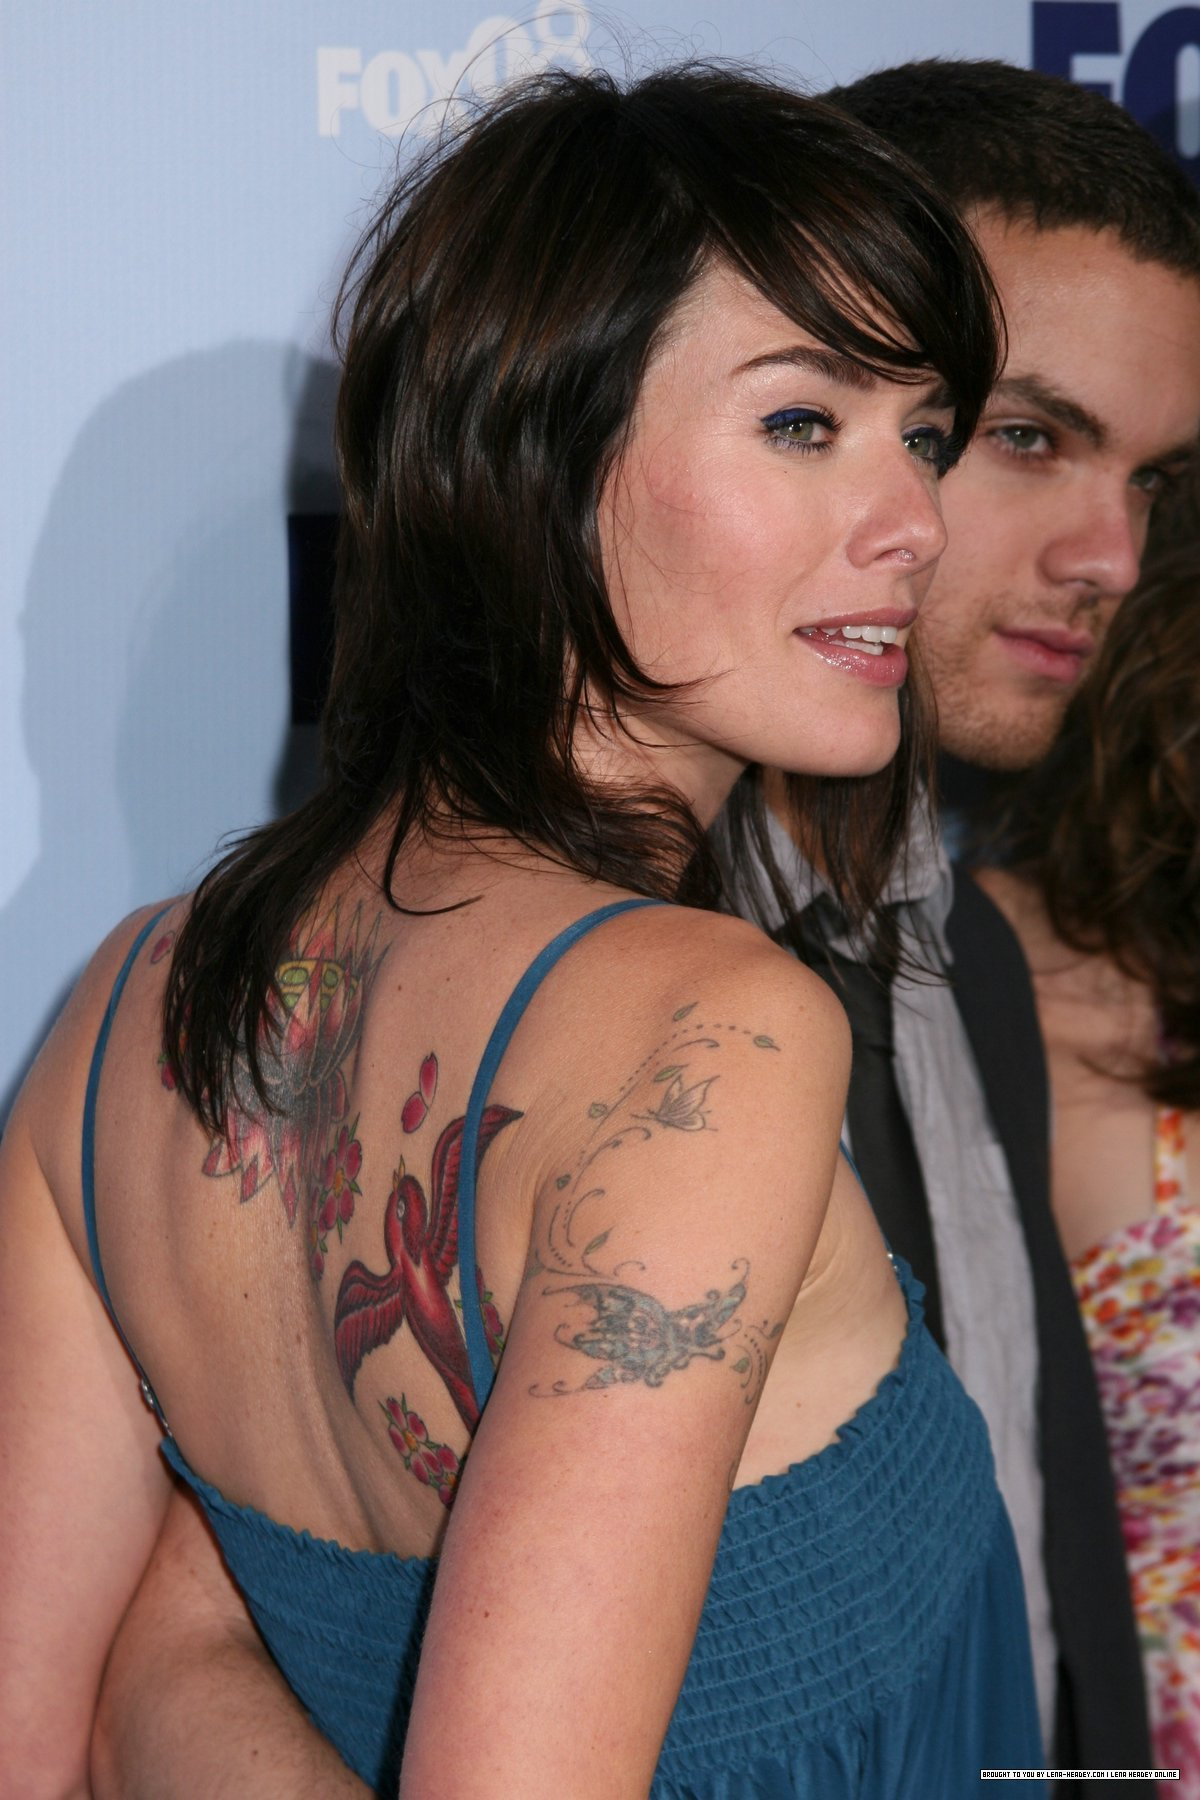 Lena and her tattoos :)